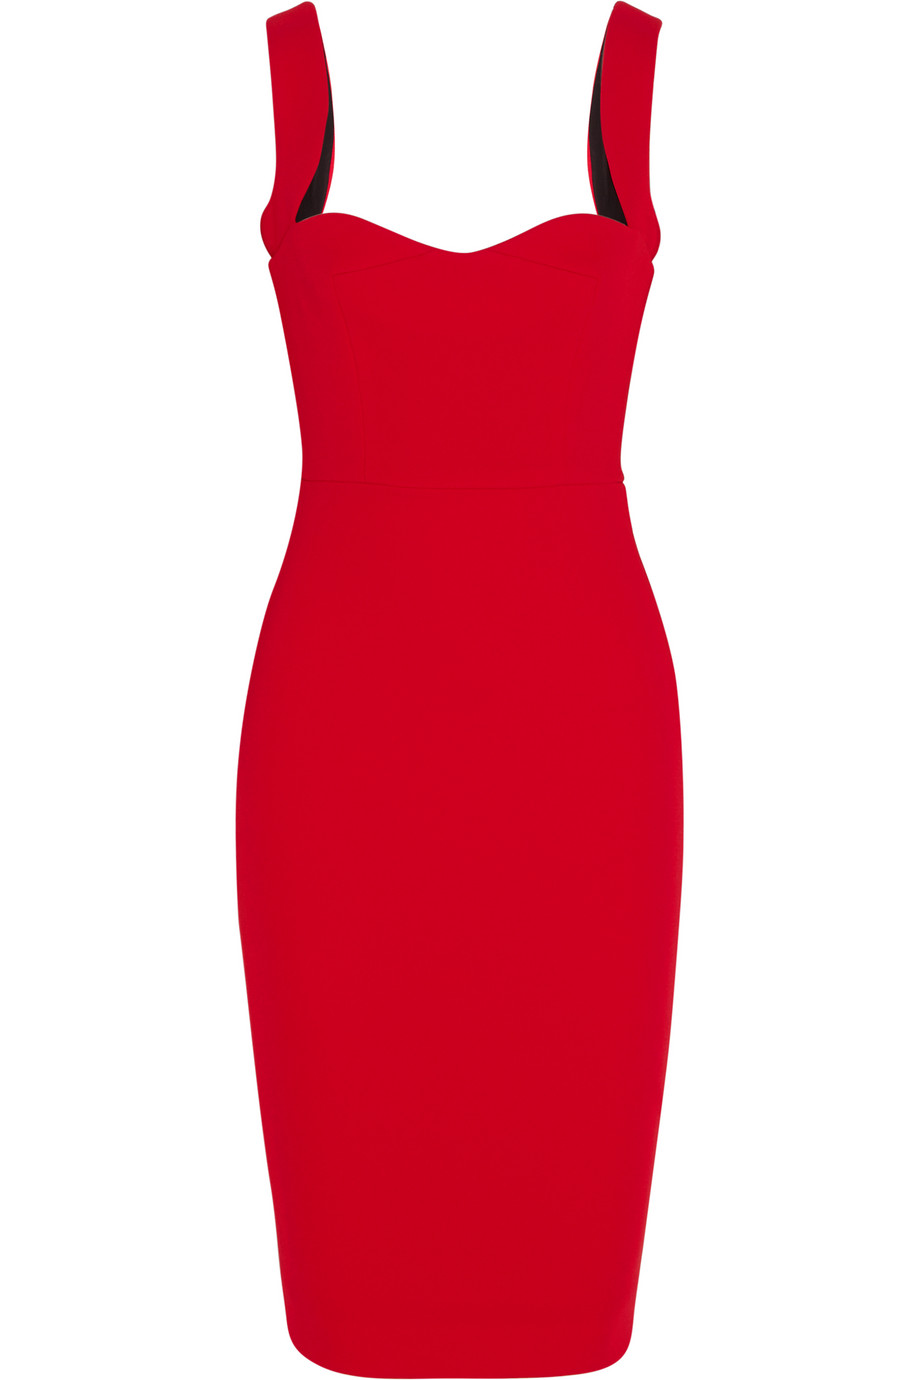 Victoria Beckham Crepe Dress, Red, Women's, Size: 8